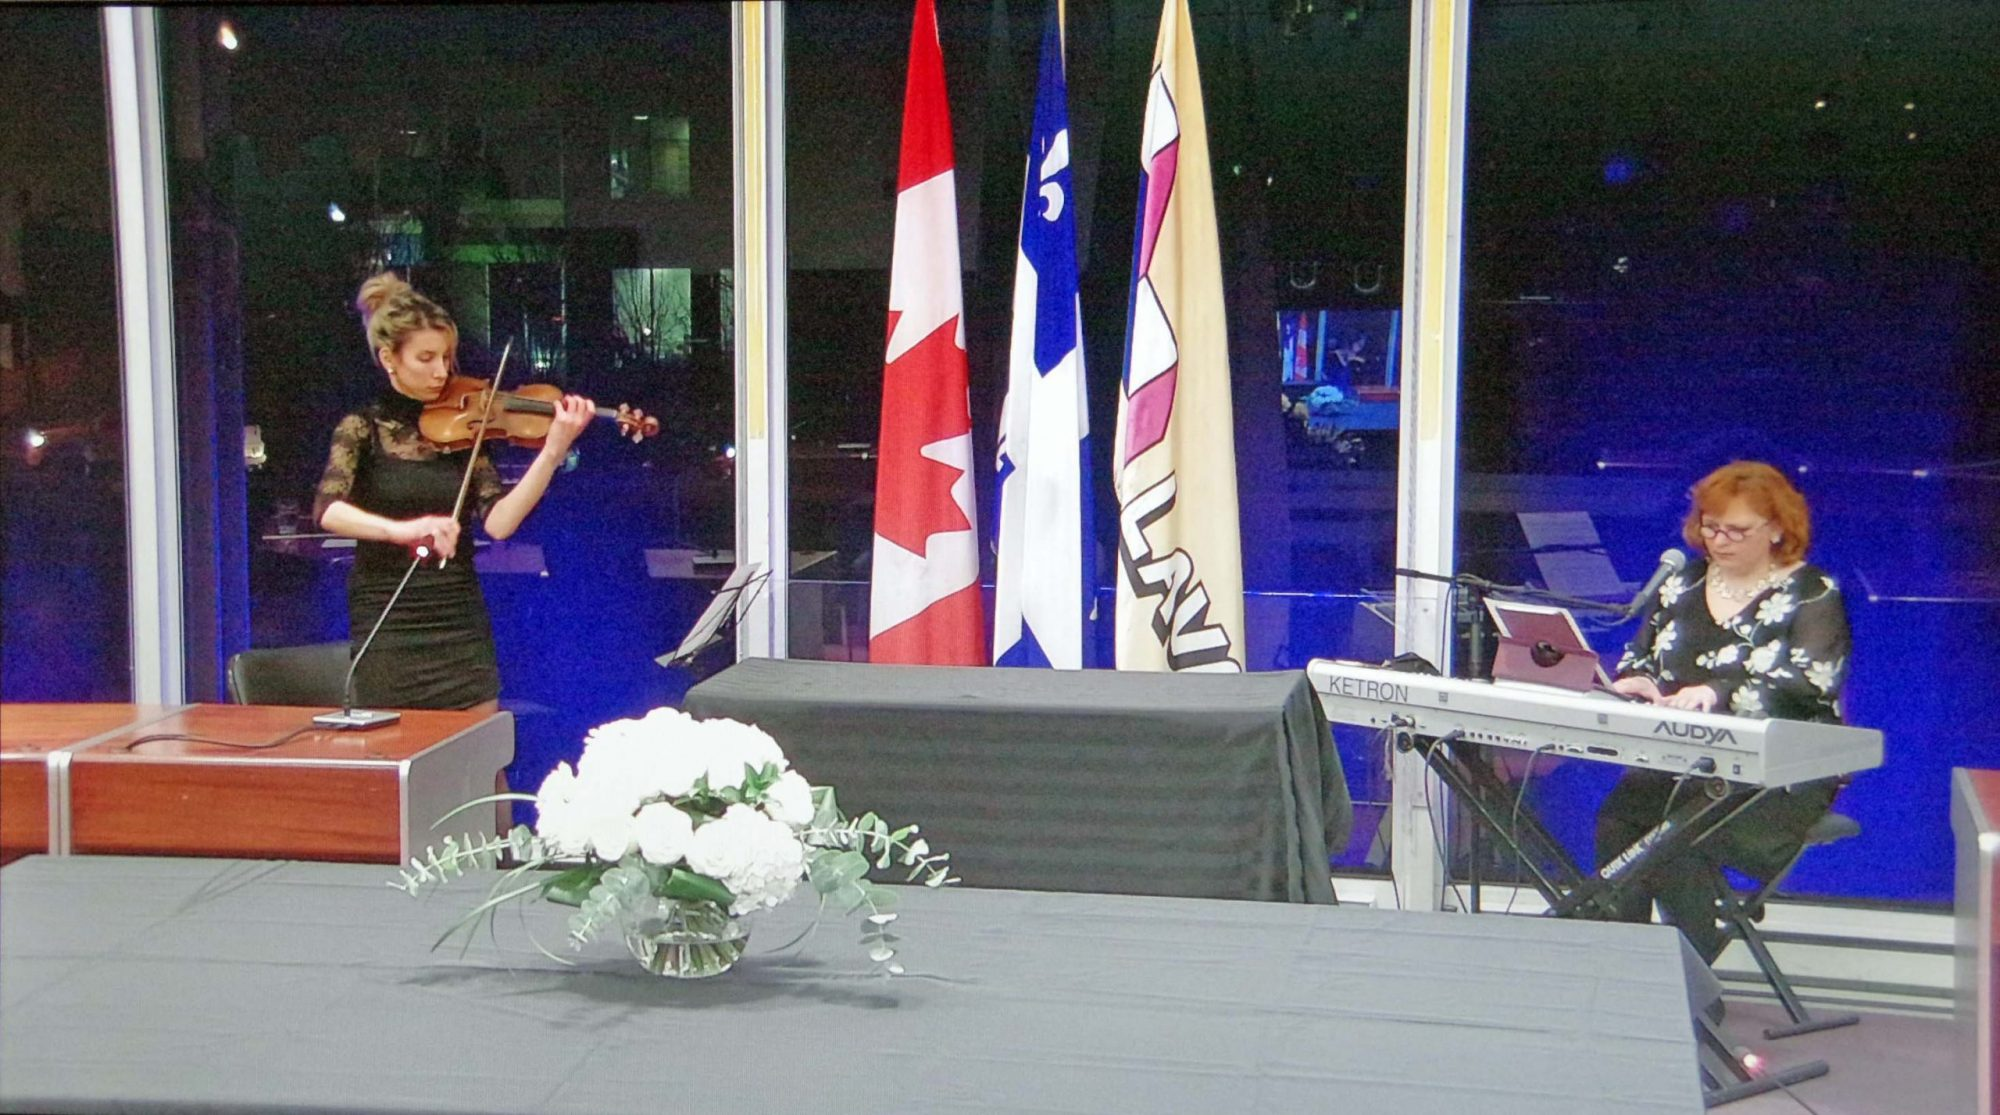 Quebec, Laval, CISSS officials pay homage to Laval's COVID-19 victims